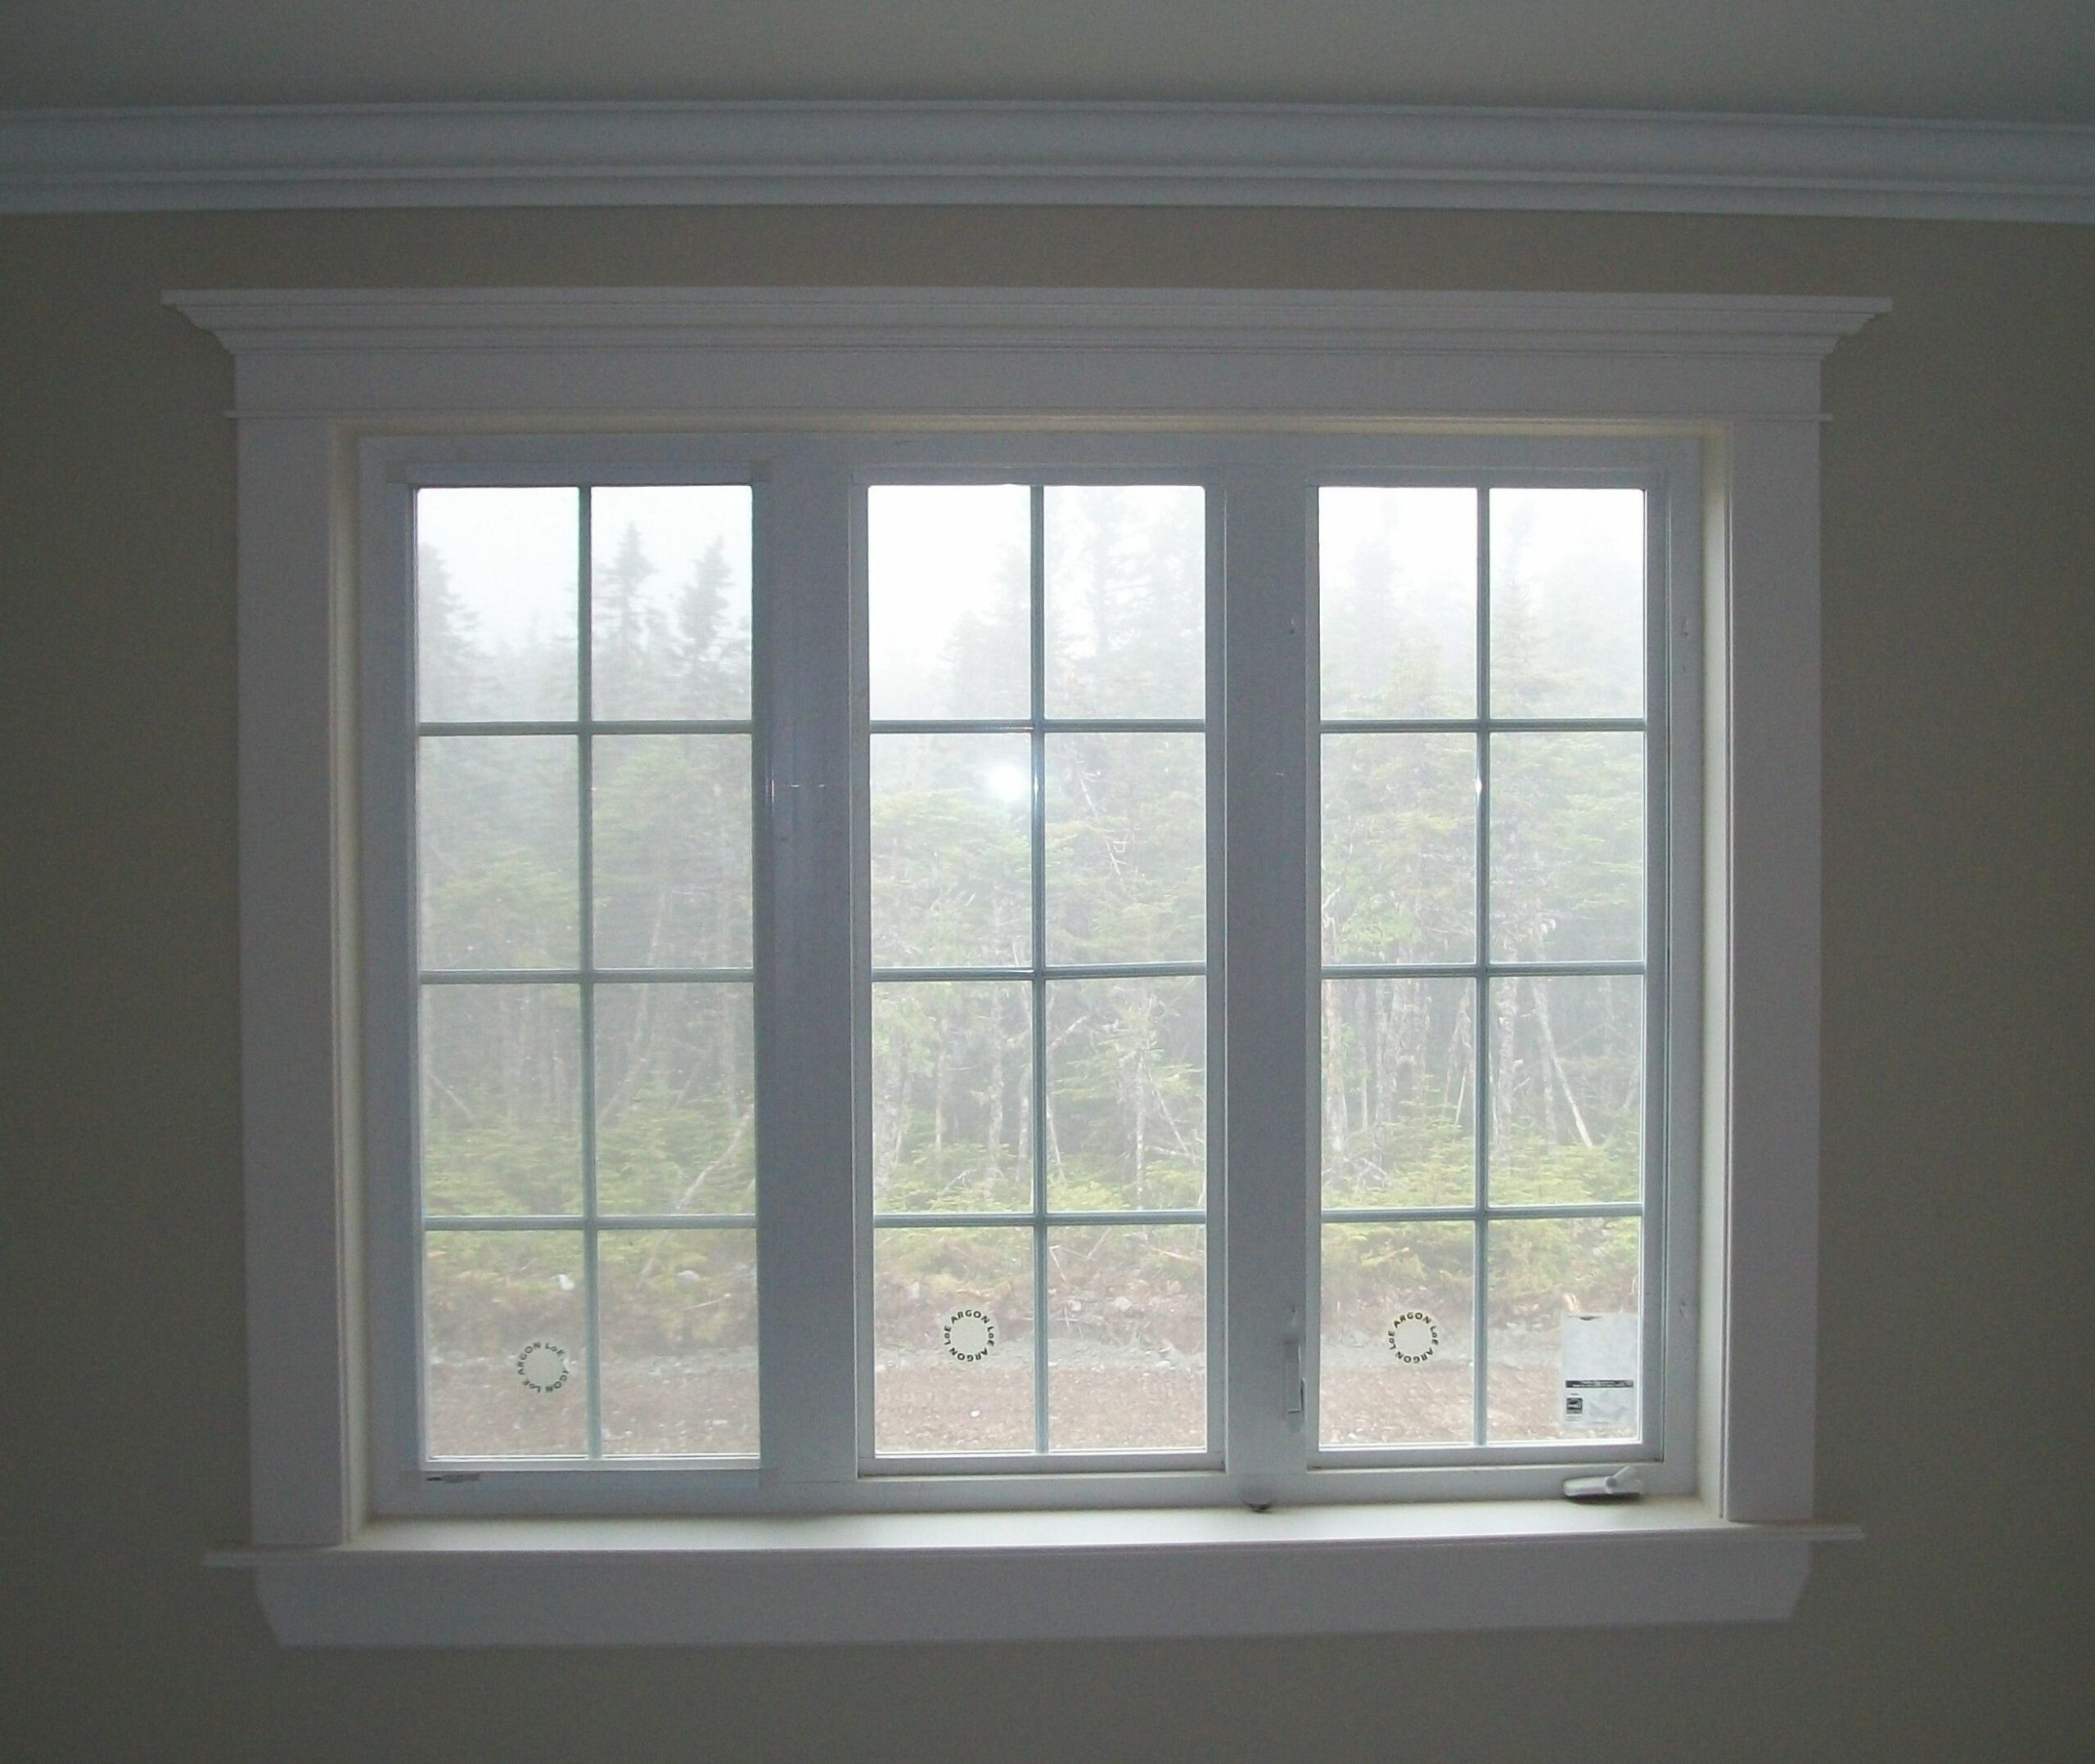 window trim - Google Search | Interior window trim, House window ...